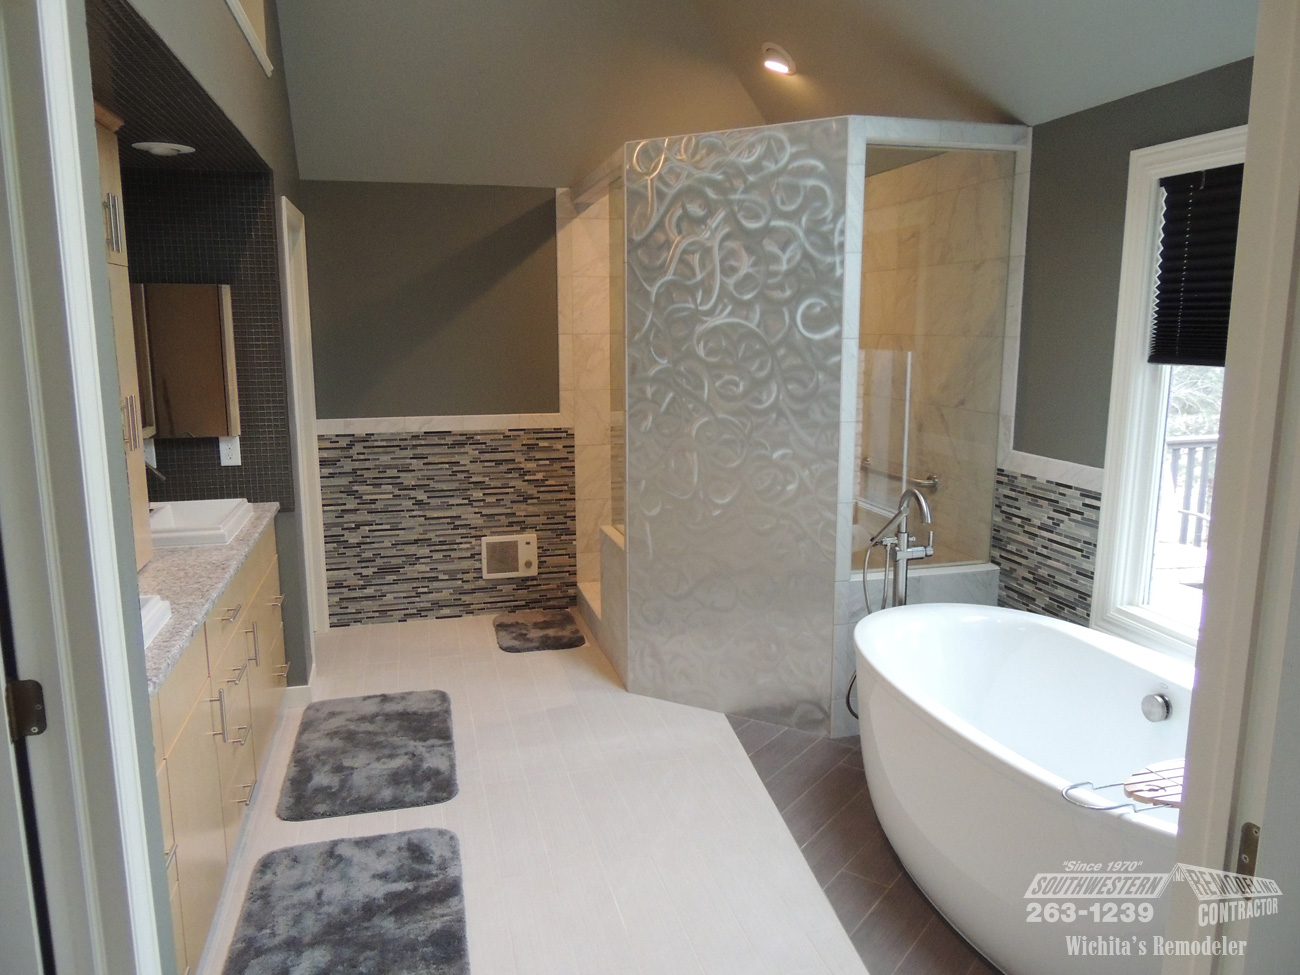 Bathroom Remodeling Southwestern Remodeling Wichita - Bathroom remodeling wichita ks